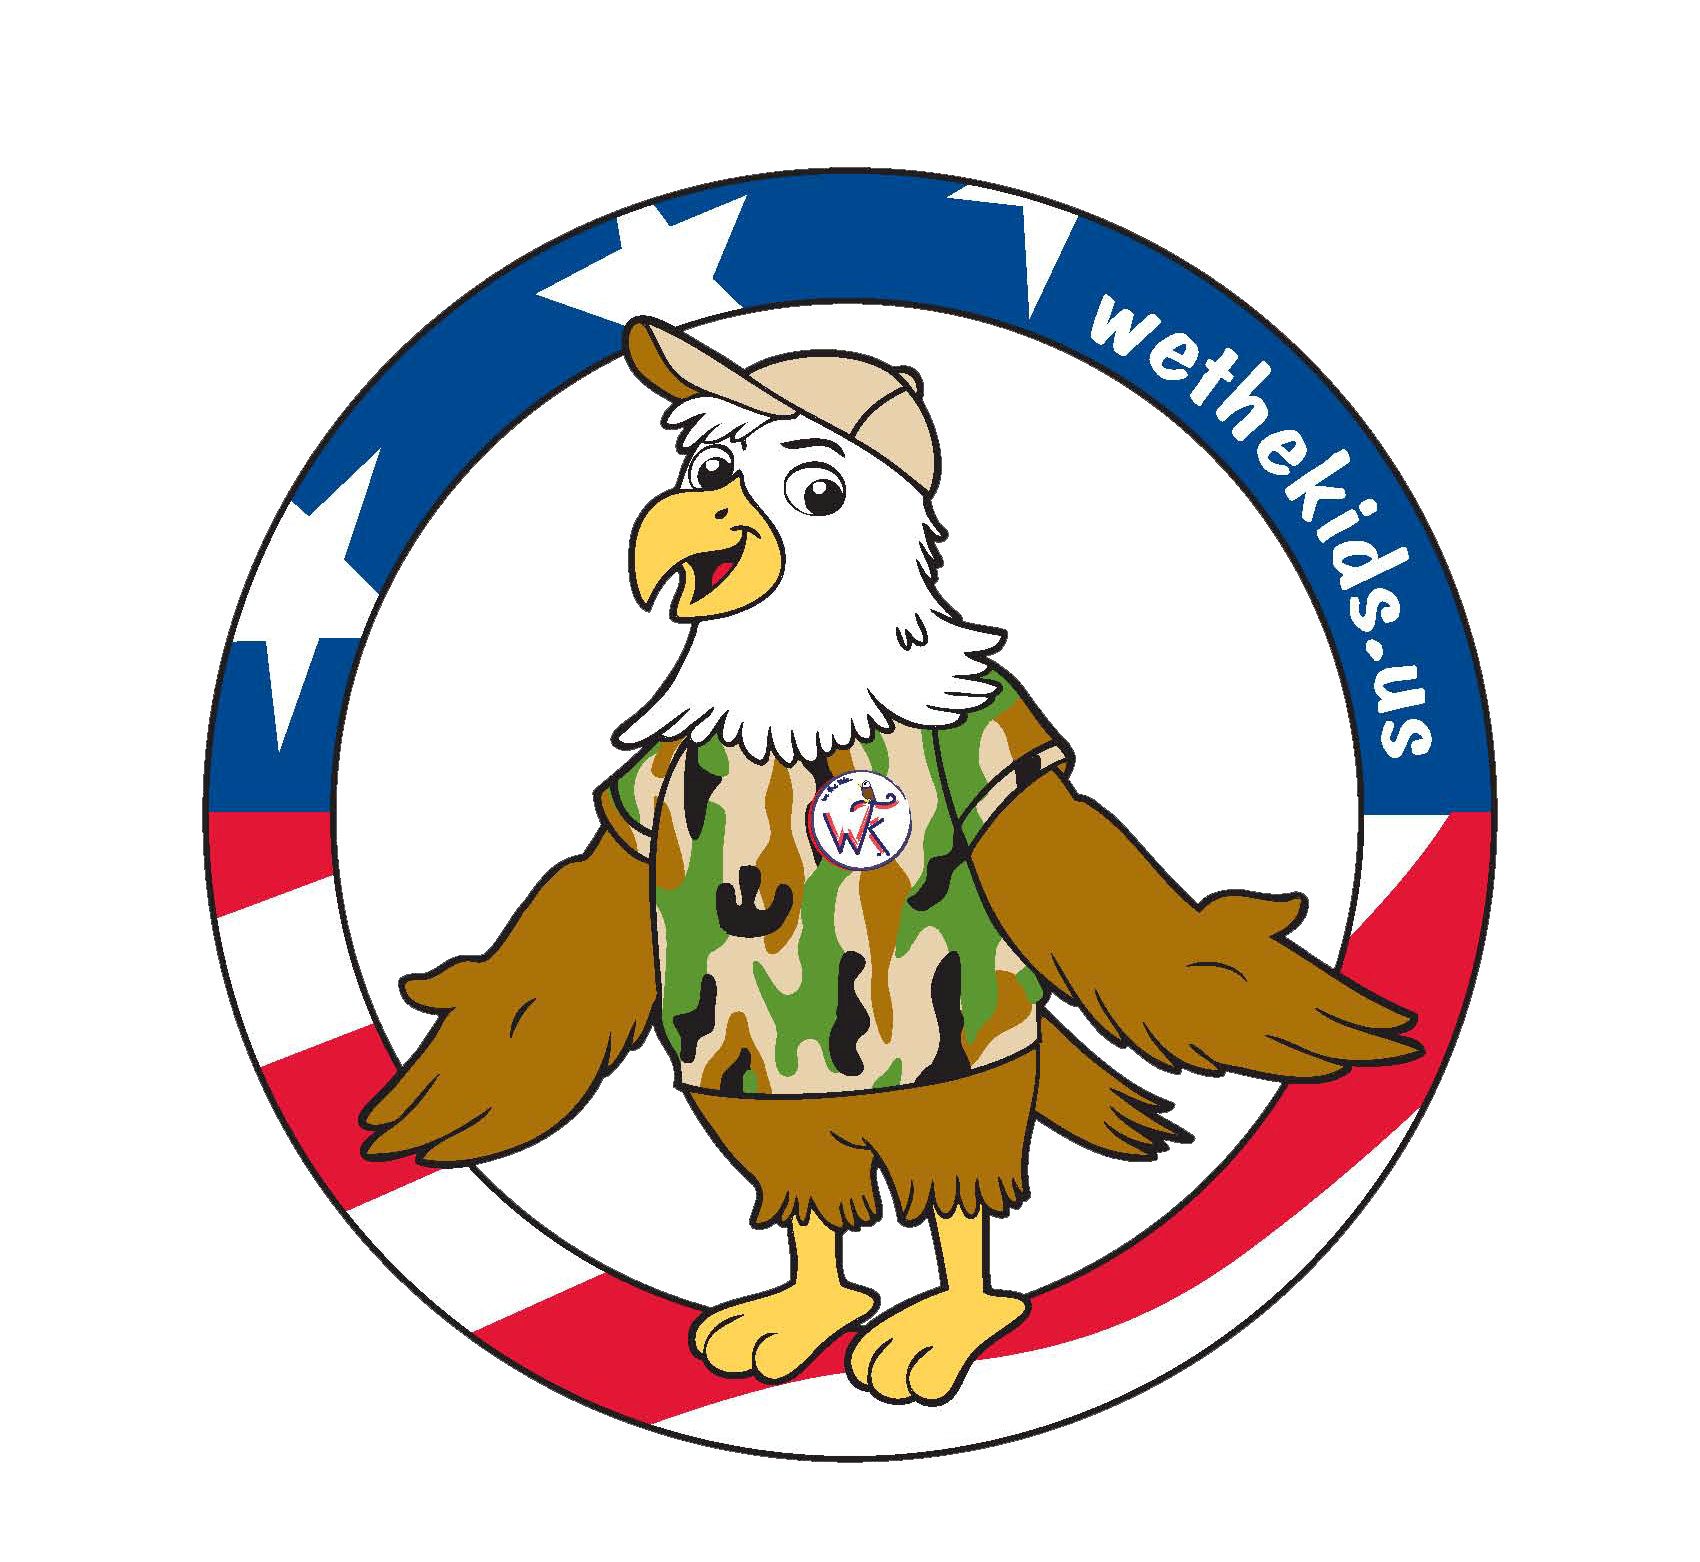 Billy-Eagle-vector-image_3